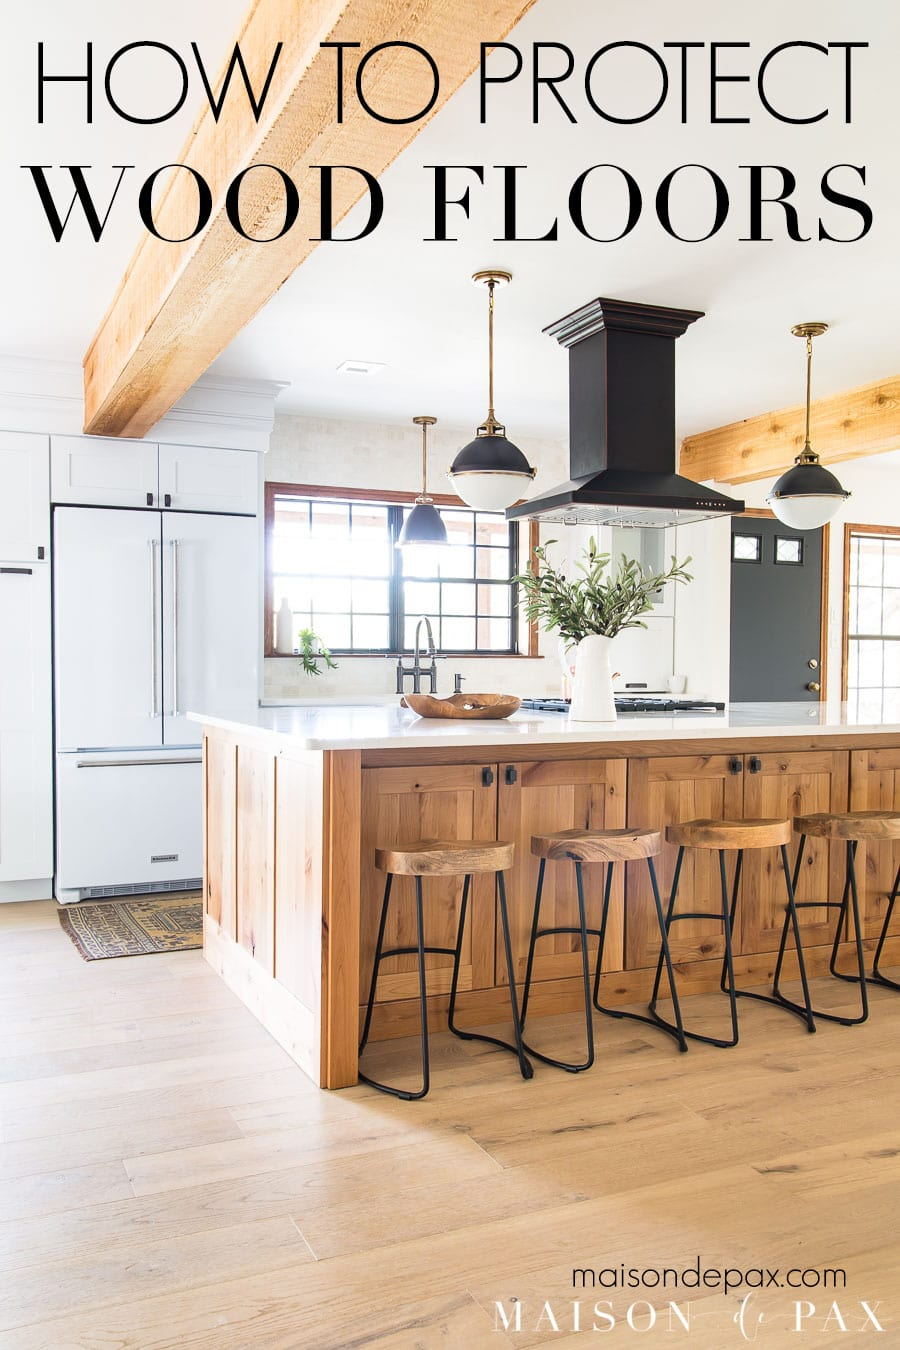 kitchen with light oak wood floors and text overlay: how to protect wood floors | Maison de Pax